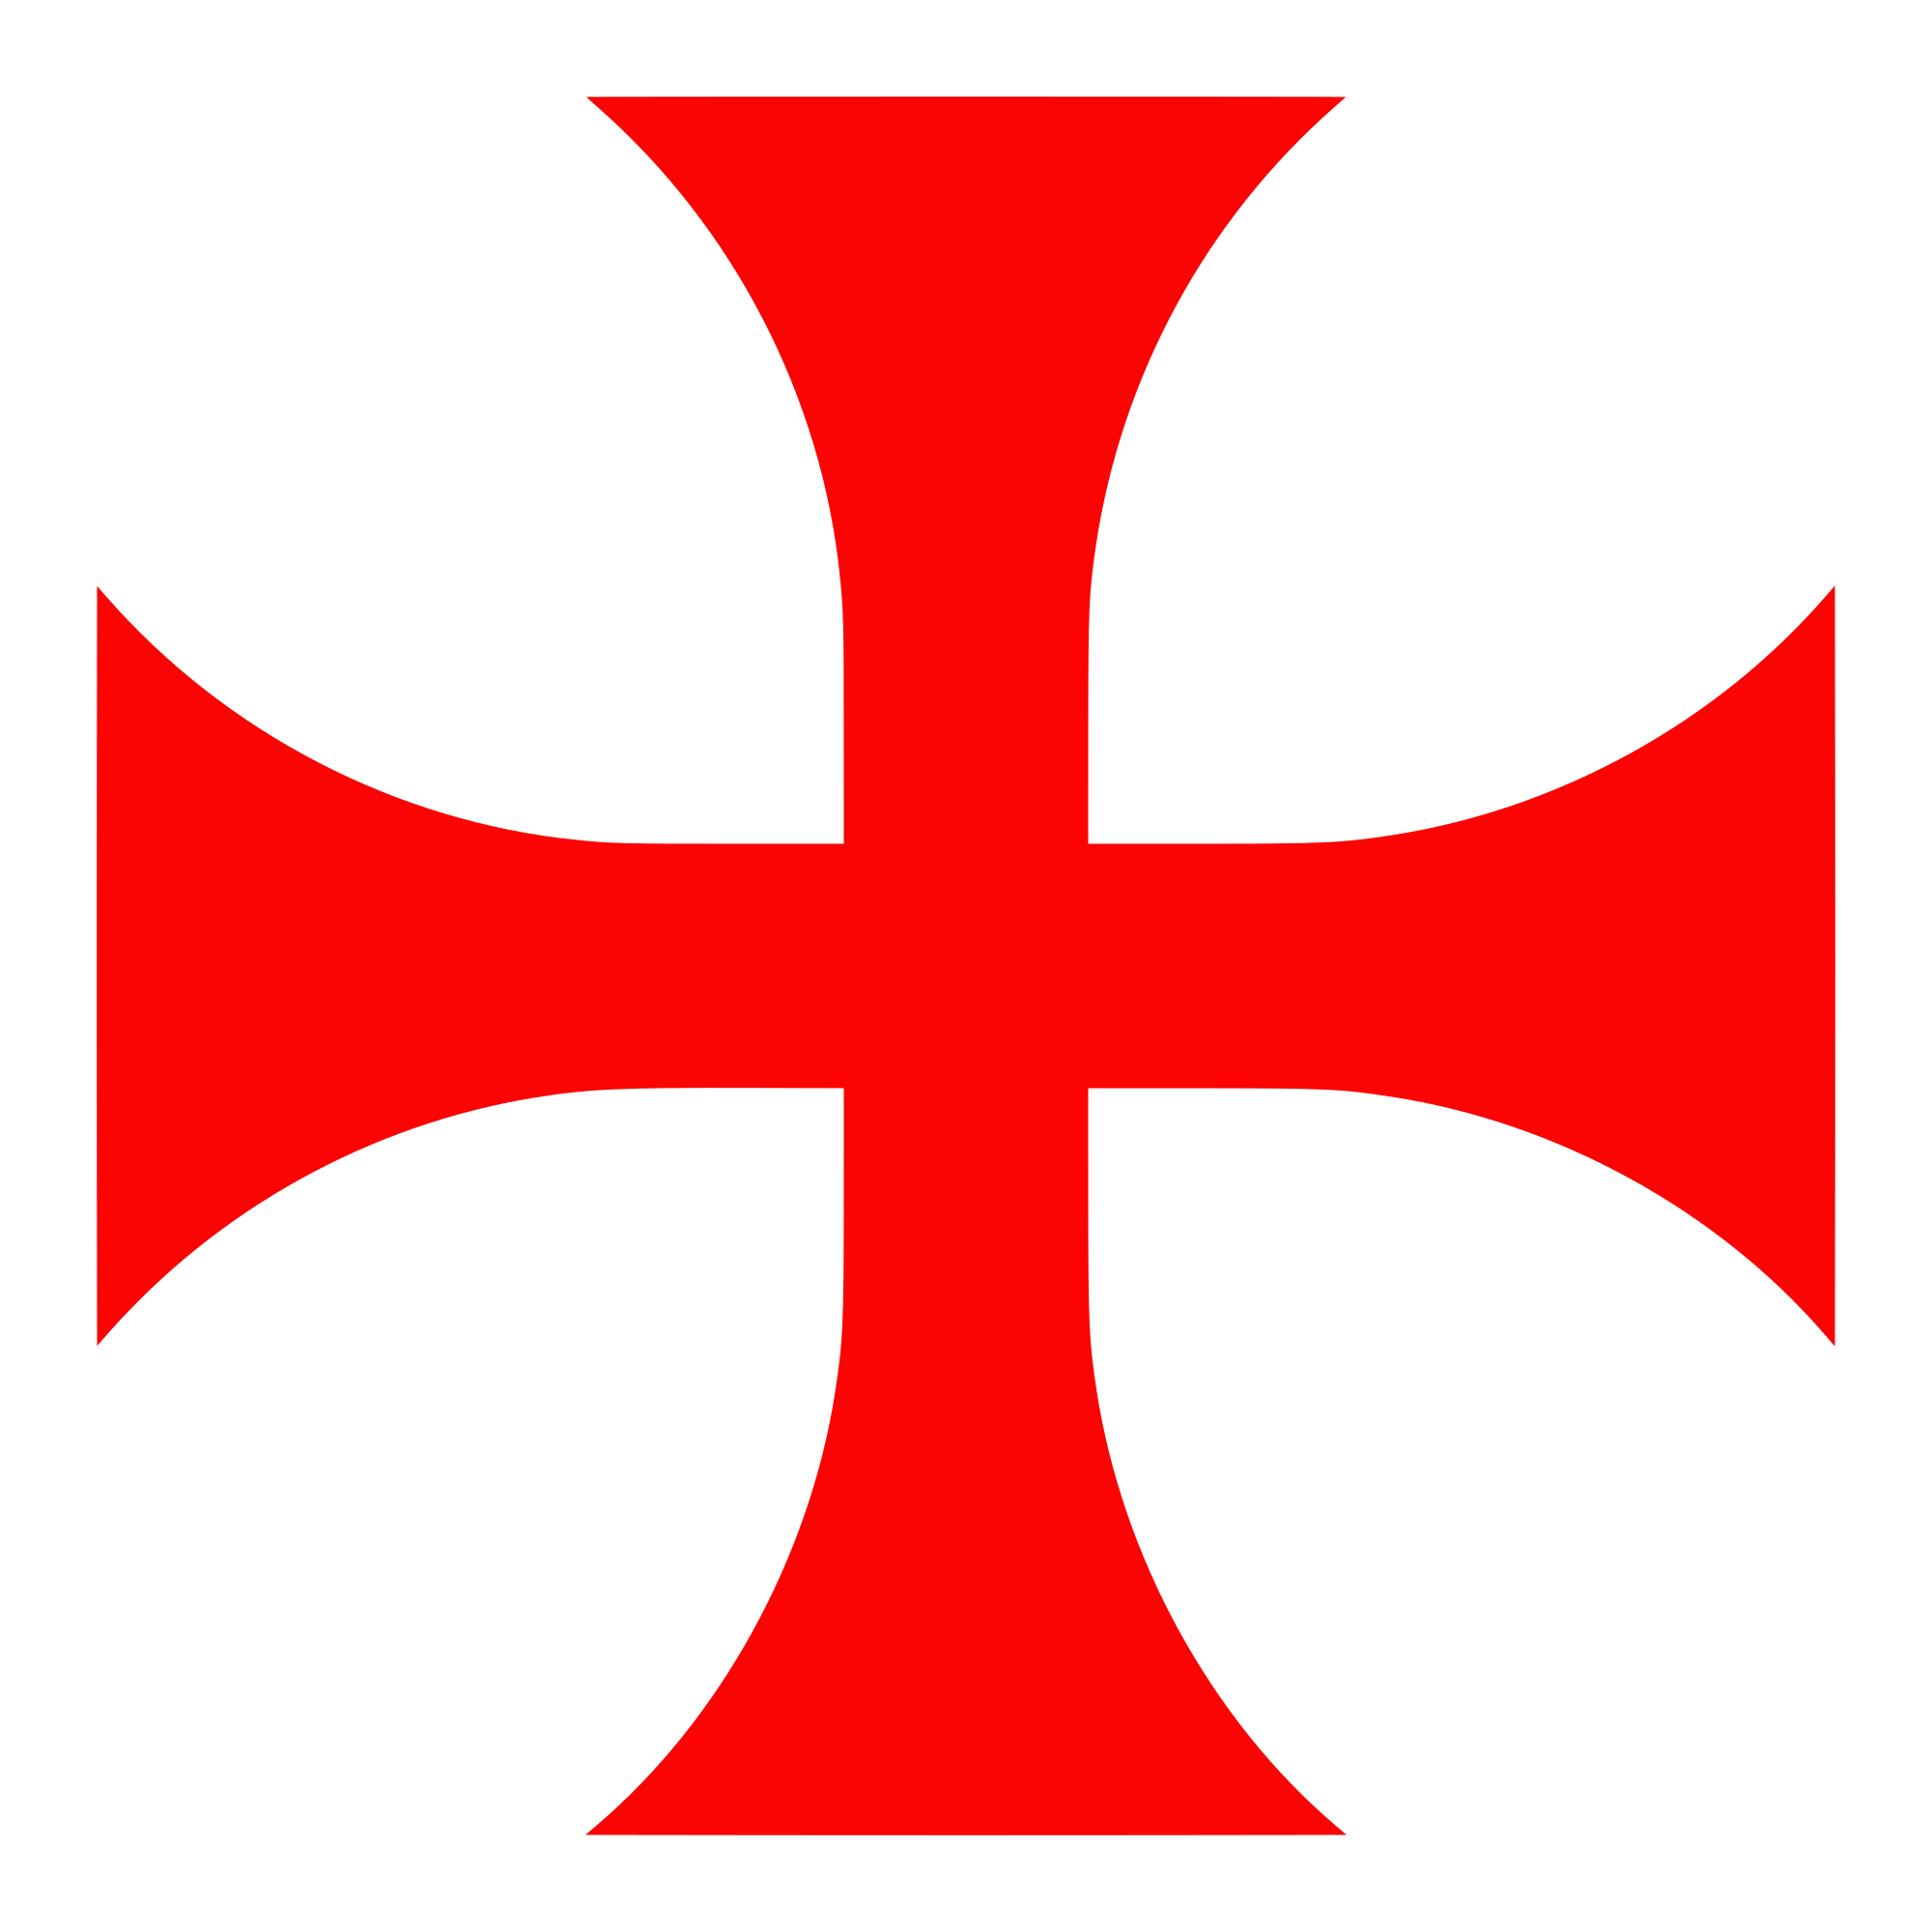 d11b1bb5e706a Templars Cross, Square and Compass, and The Night Owl that the  Vatican-influenced Templars Cross appears on the British OBE and military  medals in both the ...